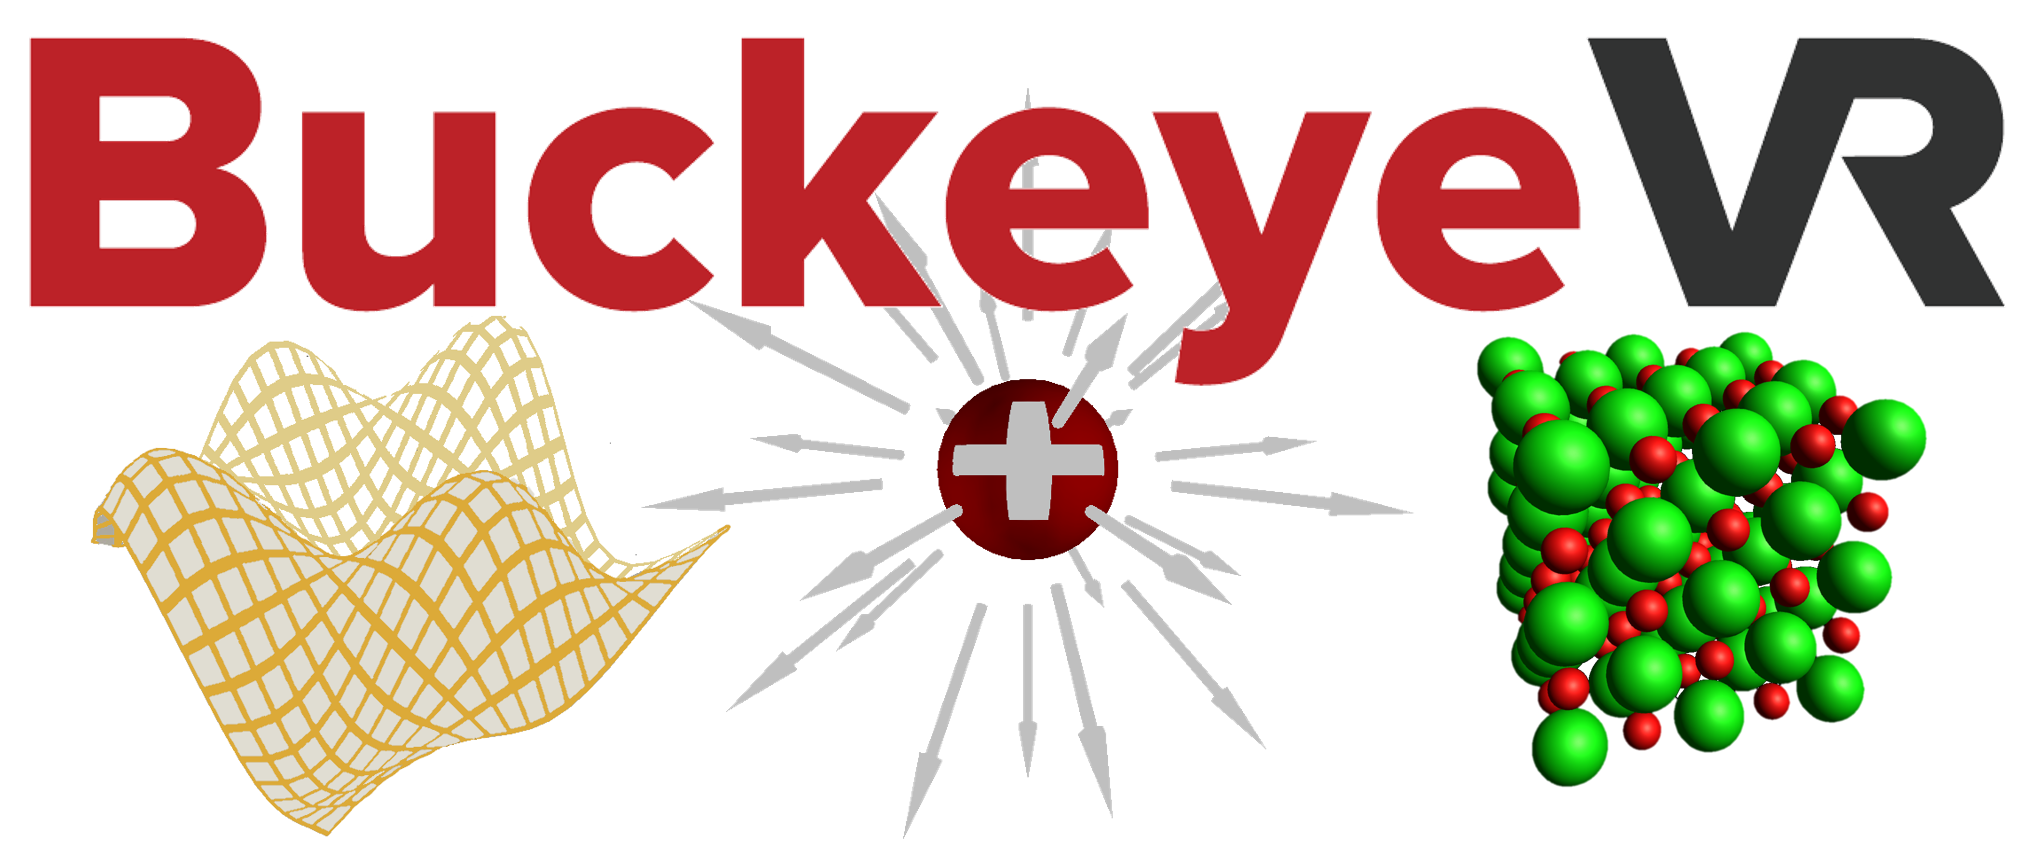 BuckeyeVR: Virtual reality STEM education by Buckeye VR. Made for Google Cardboard compatible viewers.